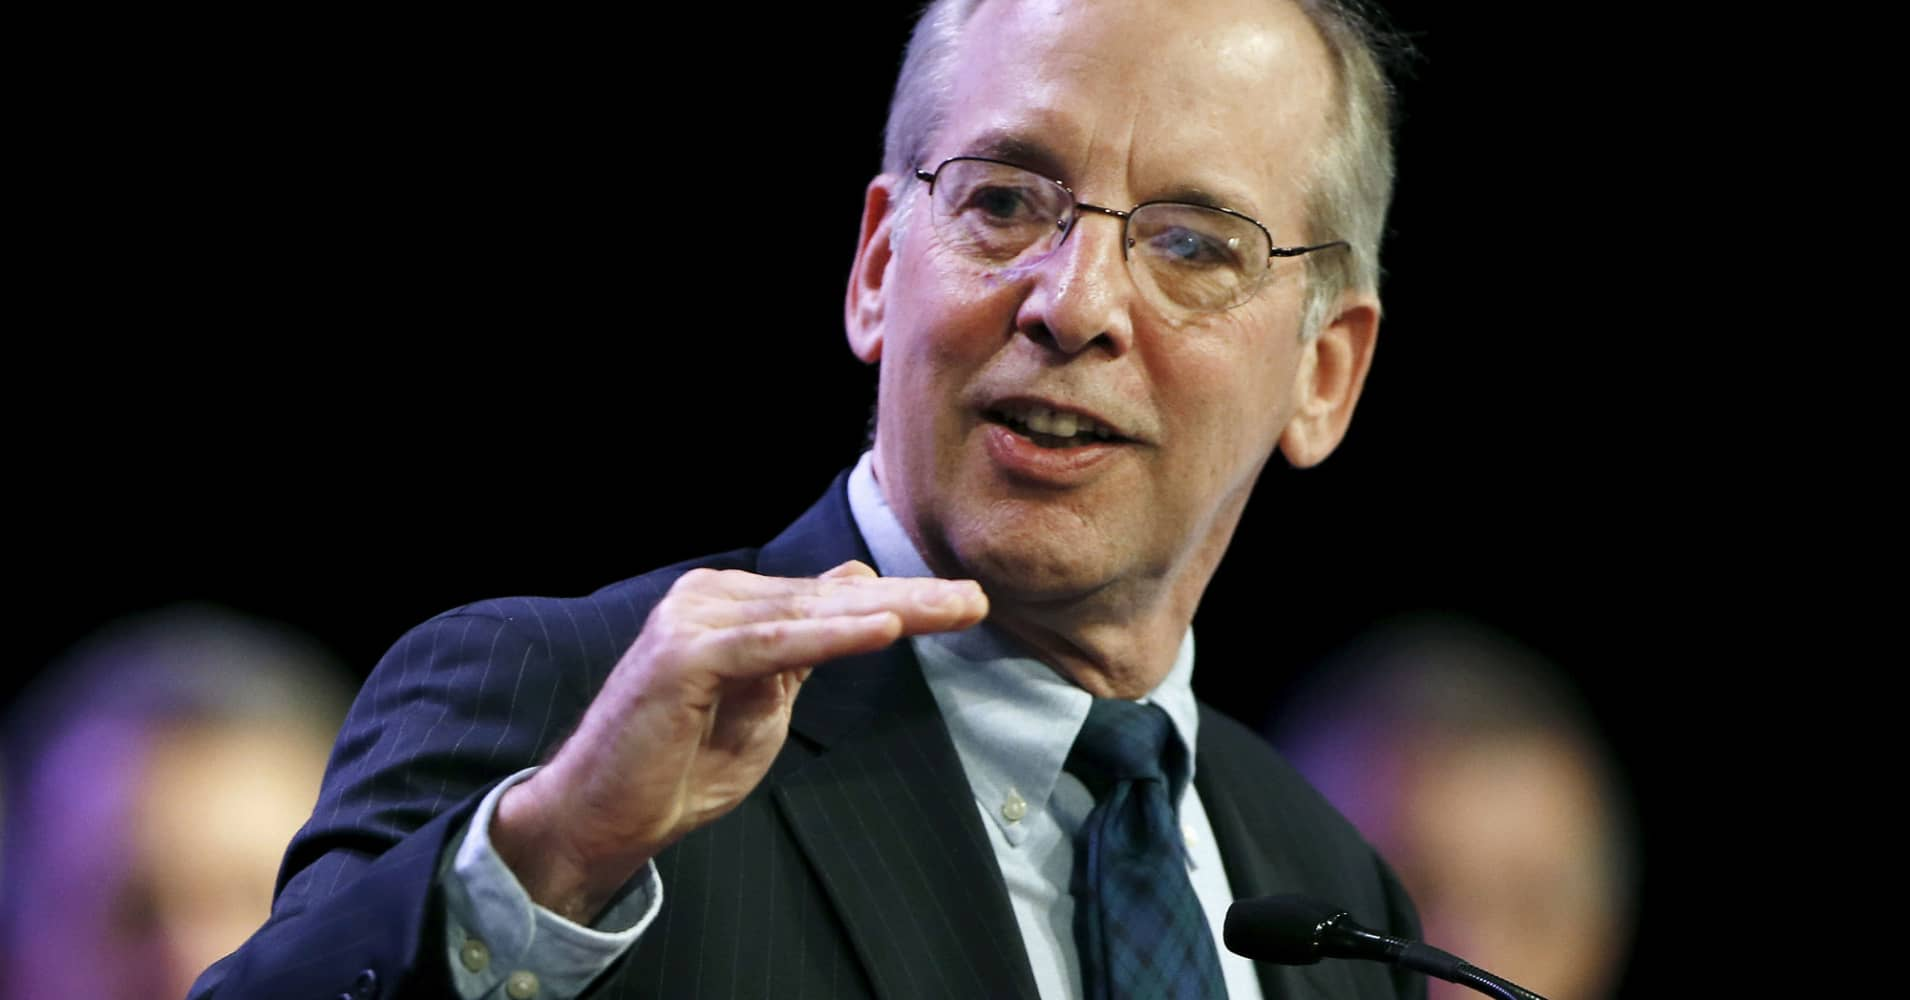 Fed's Dudley: Market drop is 'small potatoes,' economy still strong, rates going up